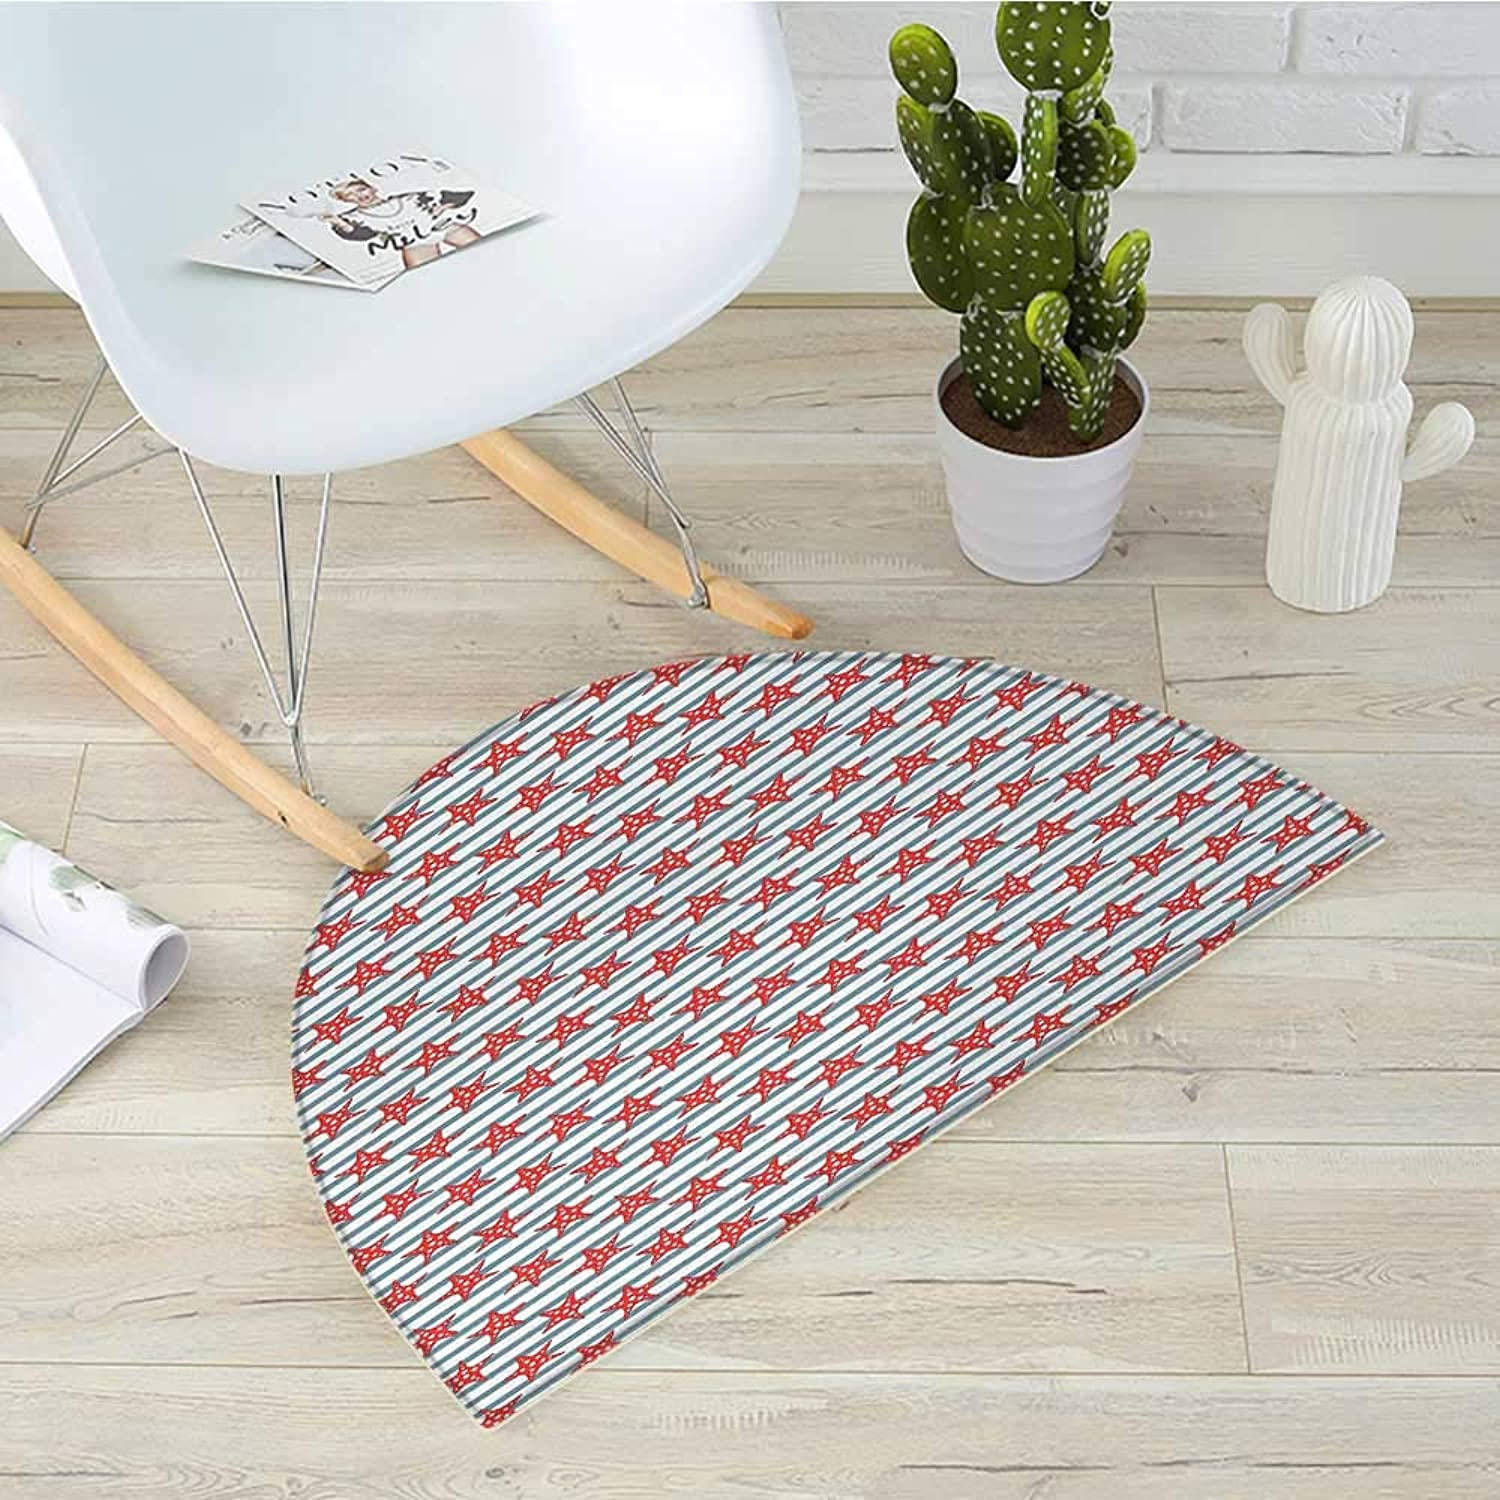 Starfish Half Round Door mats Stripes Background with Dotted Seastar Pattern Exotic Subaquatic Animals Bathroom Mat H 39.3  xD 59  Slate bluee Red White